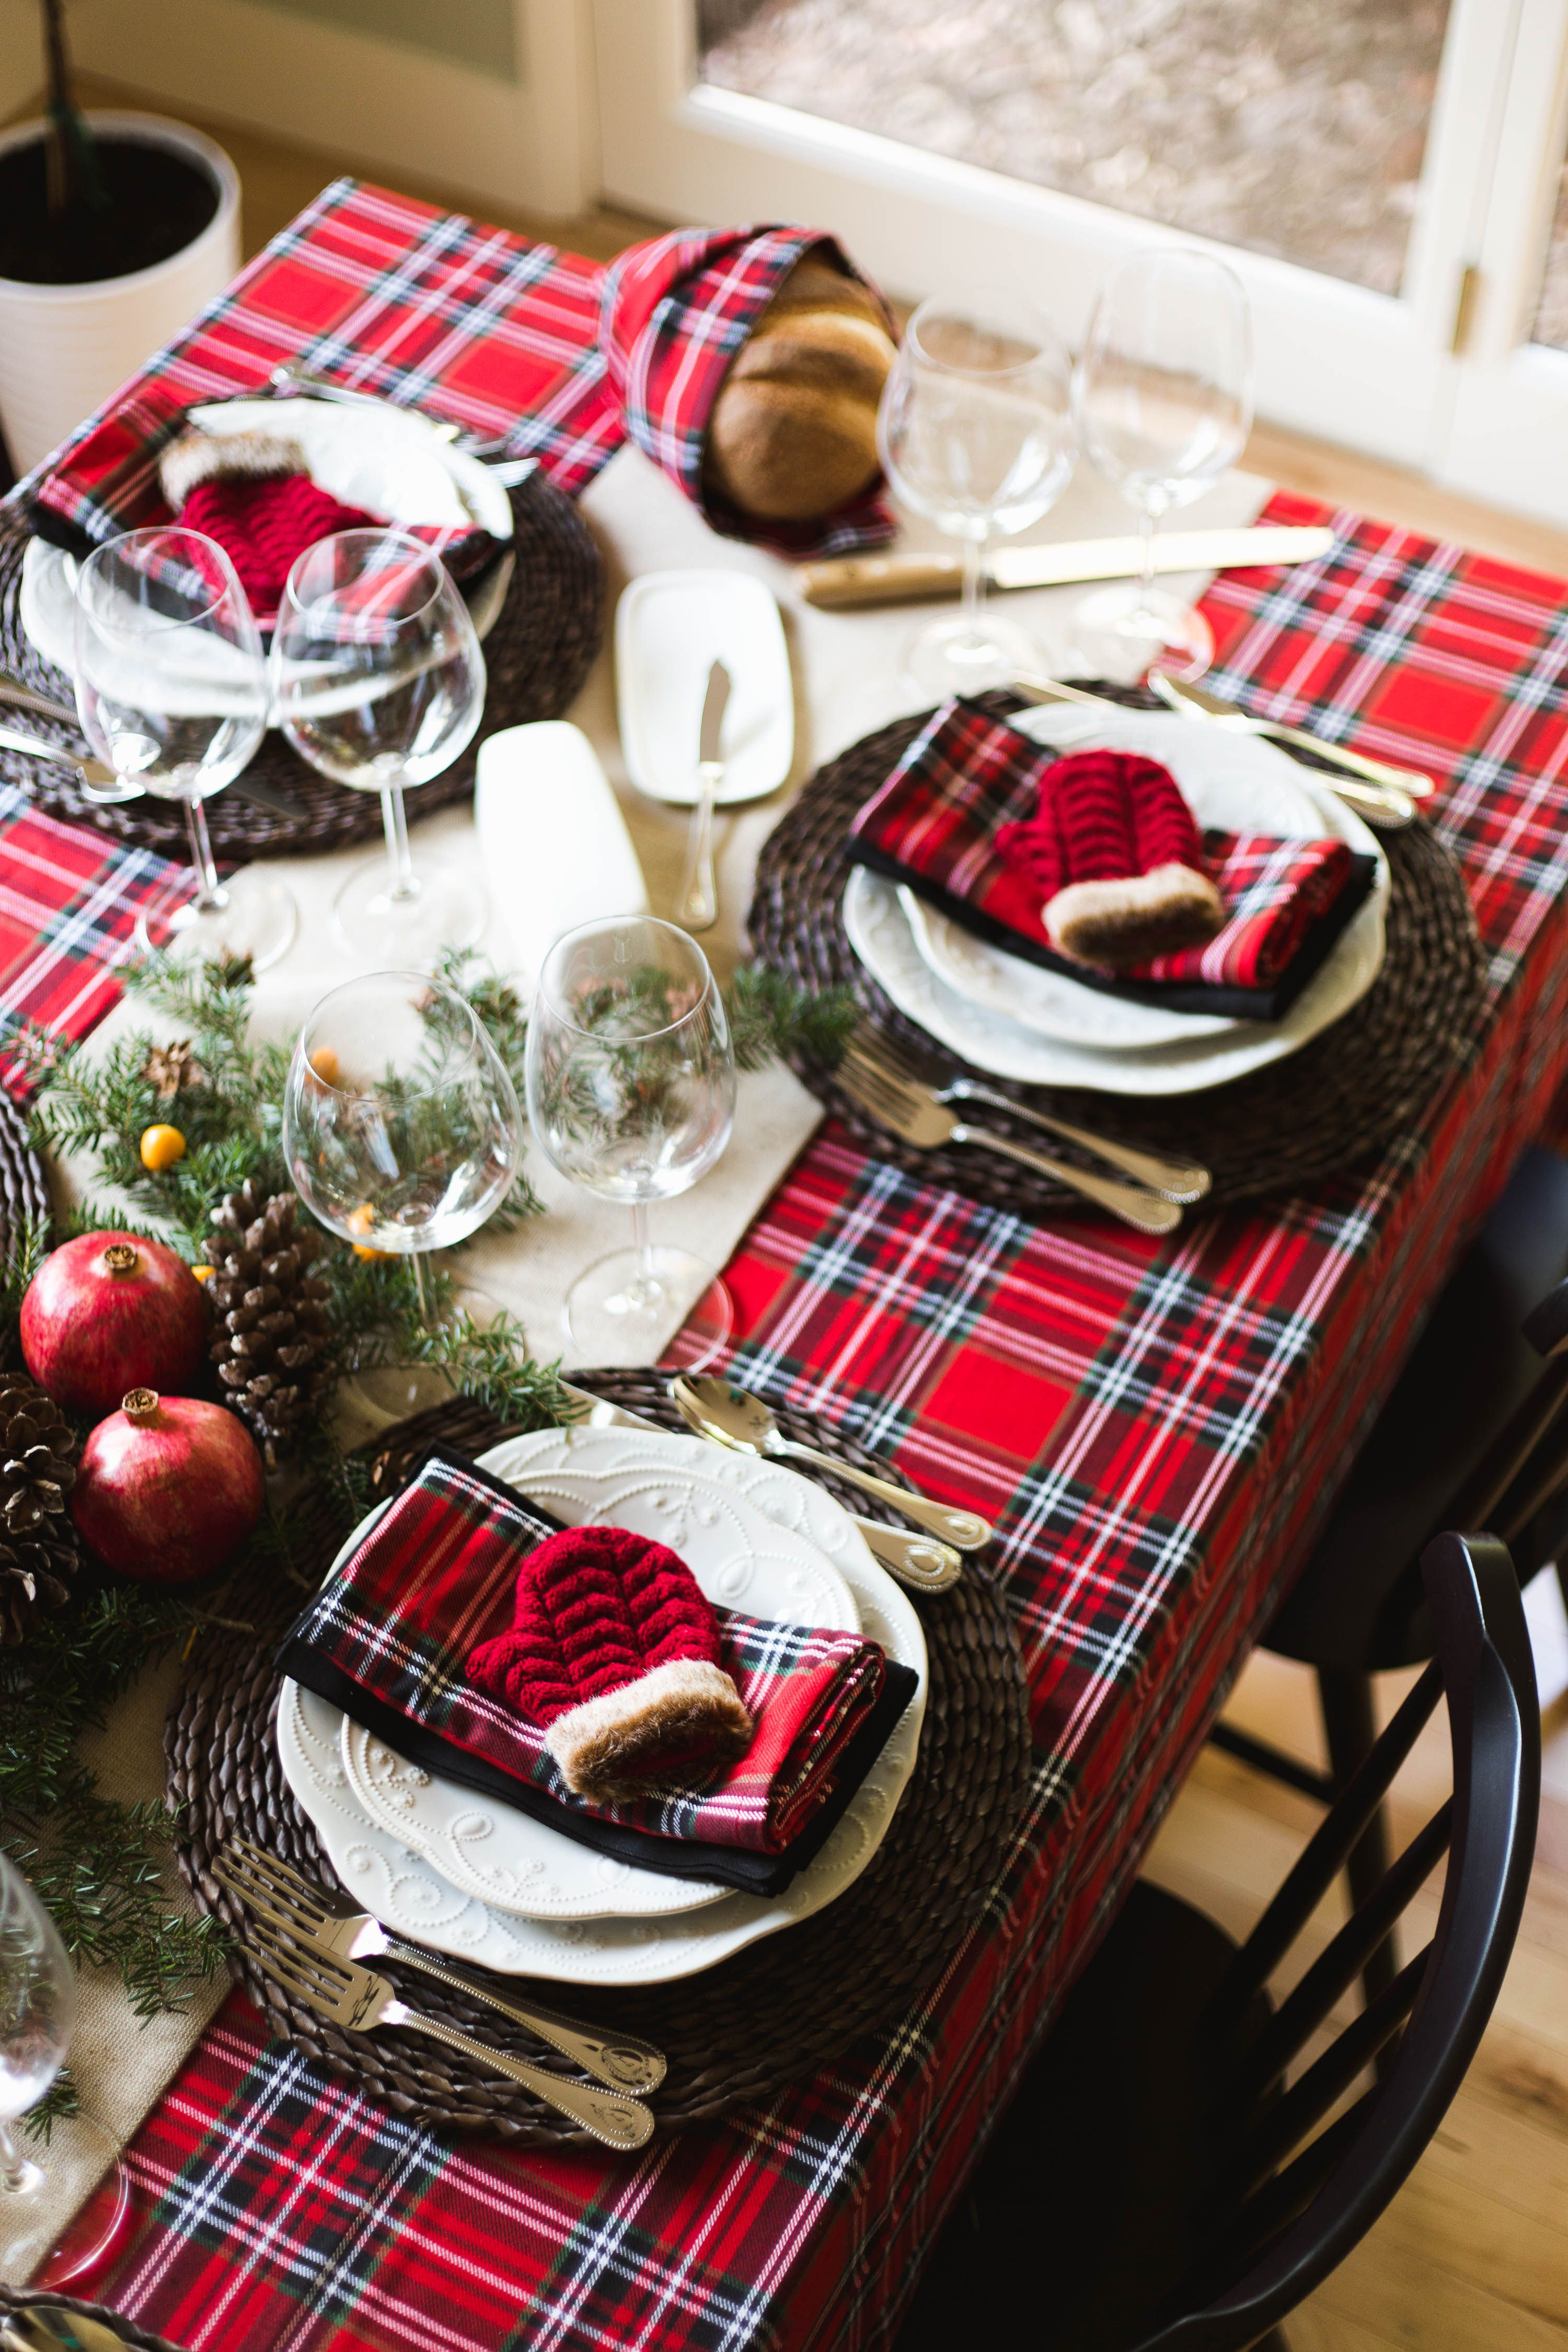 """Christmas table inspiration: Add a festive touch to your tablescape with the Warm & Cozy Christmas Table Collection. """"Choose from festive tablecloths, napkins, place settings, serveware and more, all coordinated in matching style."""